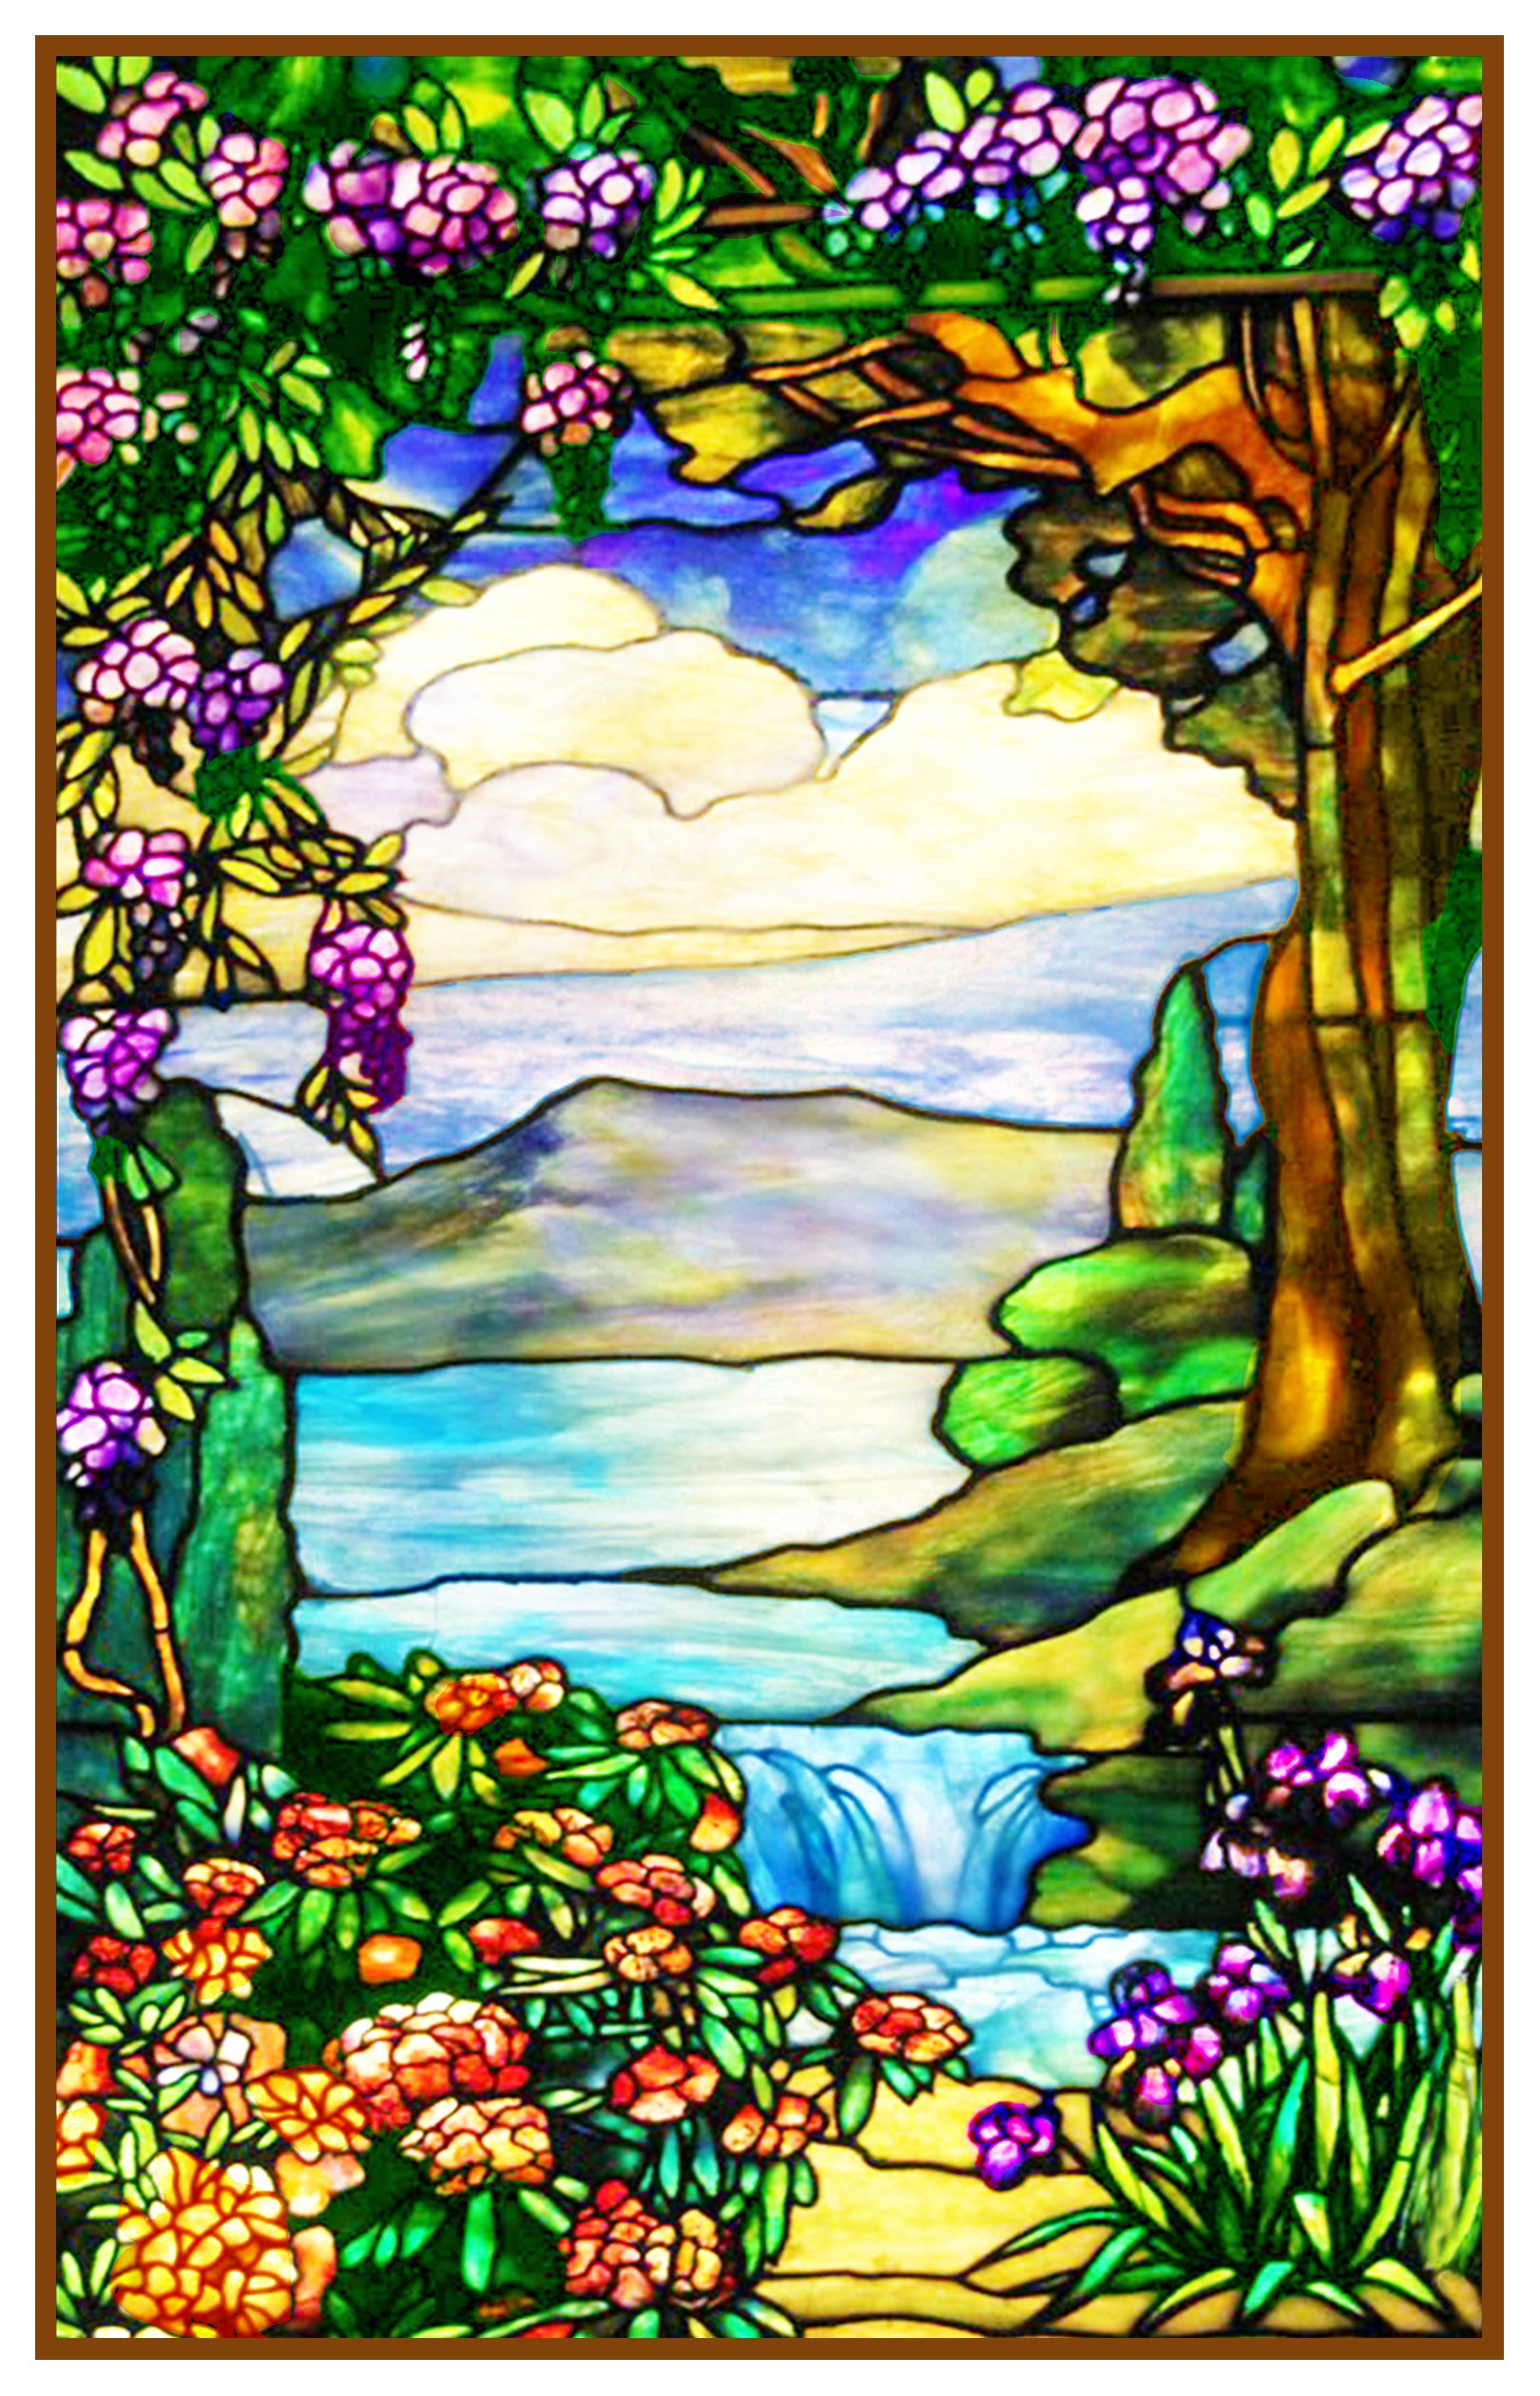 Louis Comfort Tiffany.Landscape With Waterfall Inspired By Louis Comfort Tiffany Counted Cross Stitch Pattern